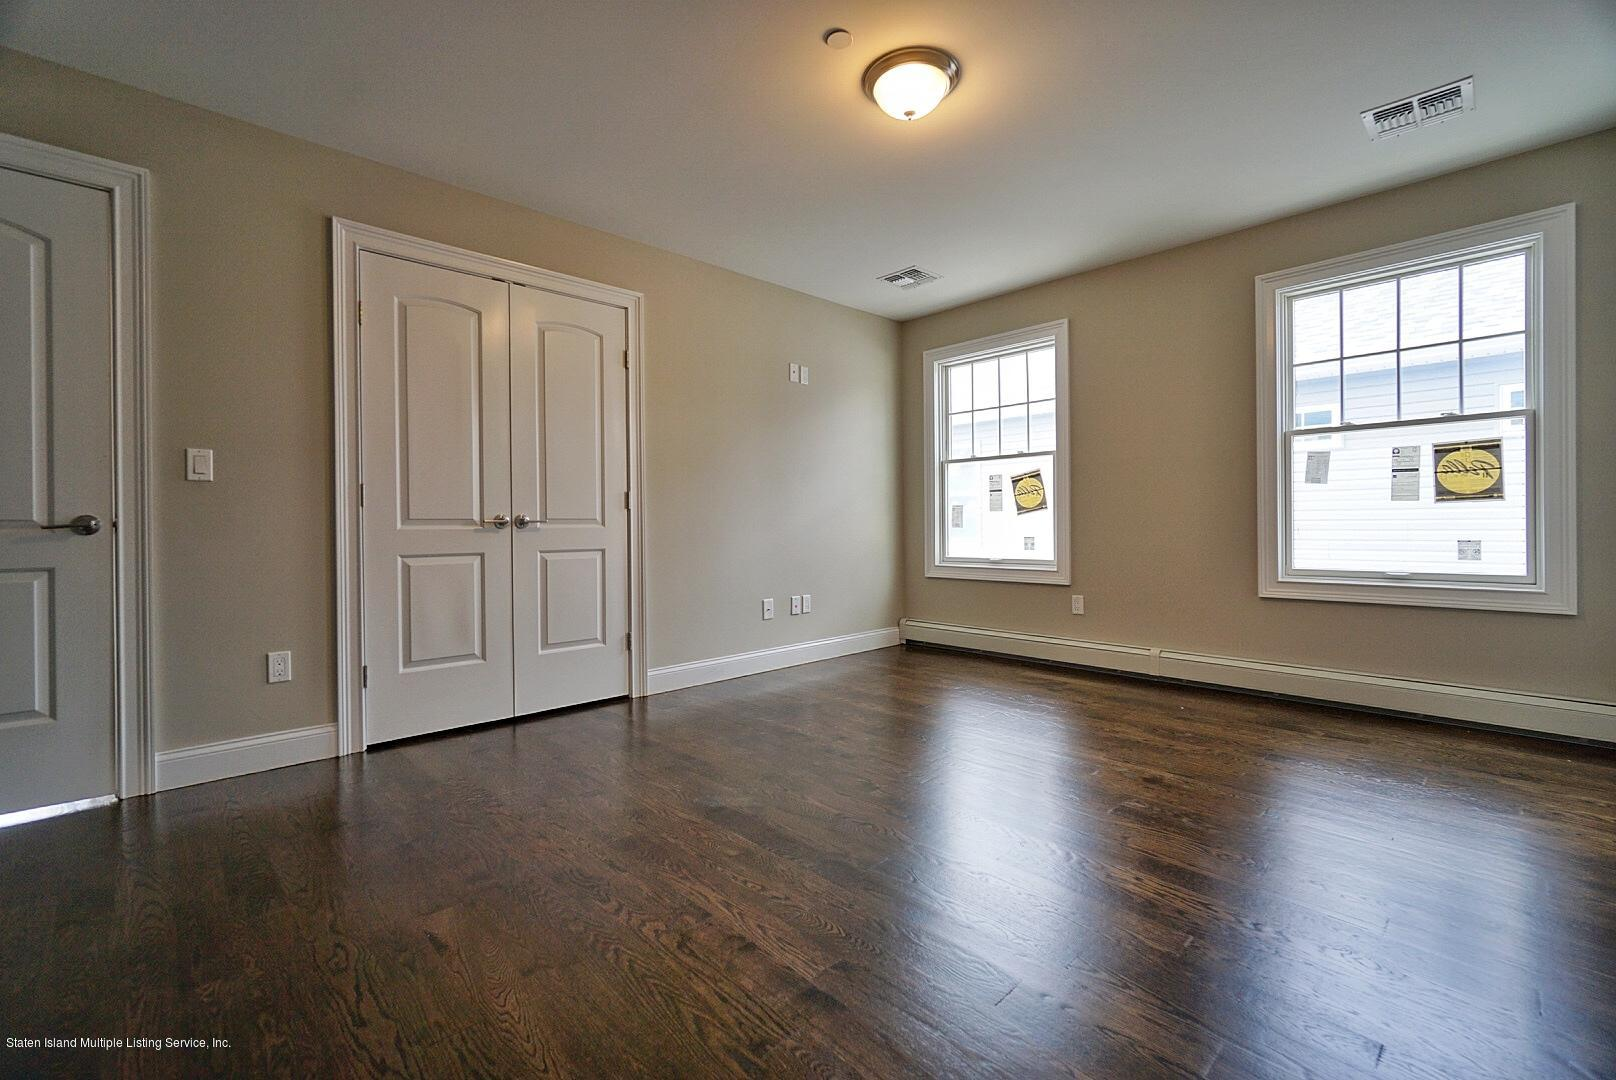 Two Family - Detached 169 Bathgate St   Staten Island, NY 10312, MLS-1122726-29